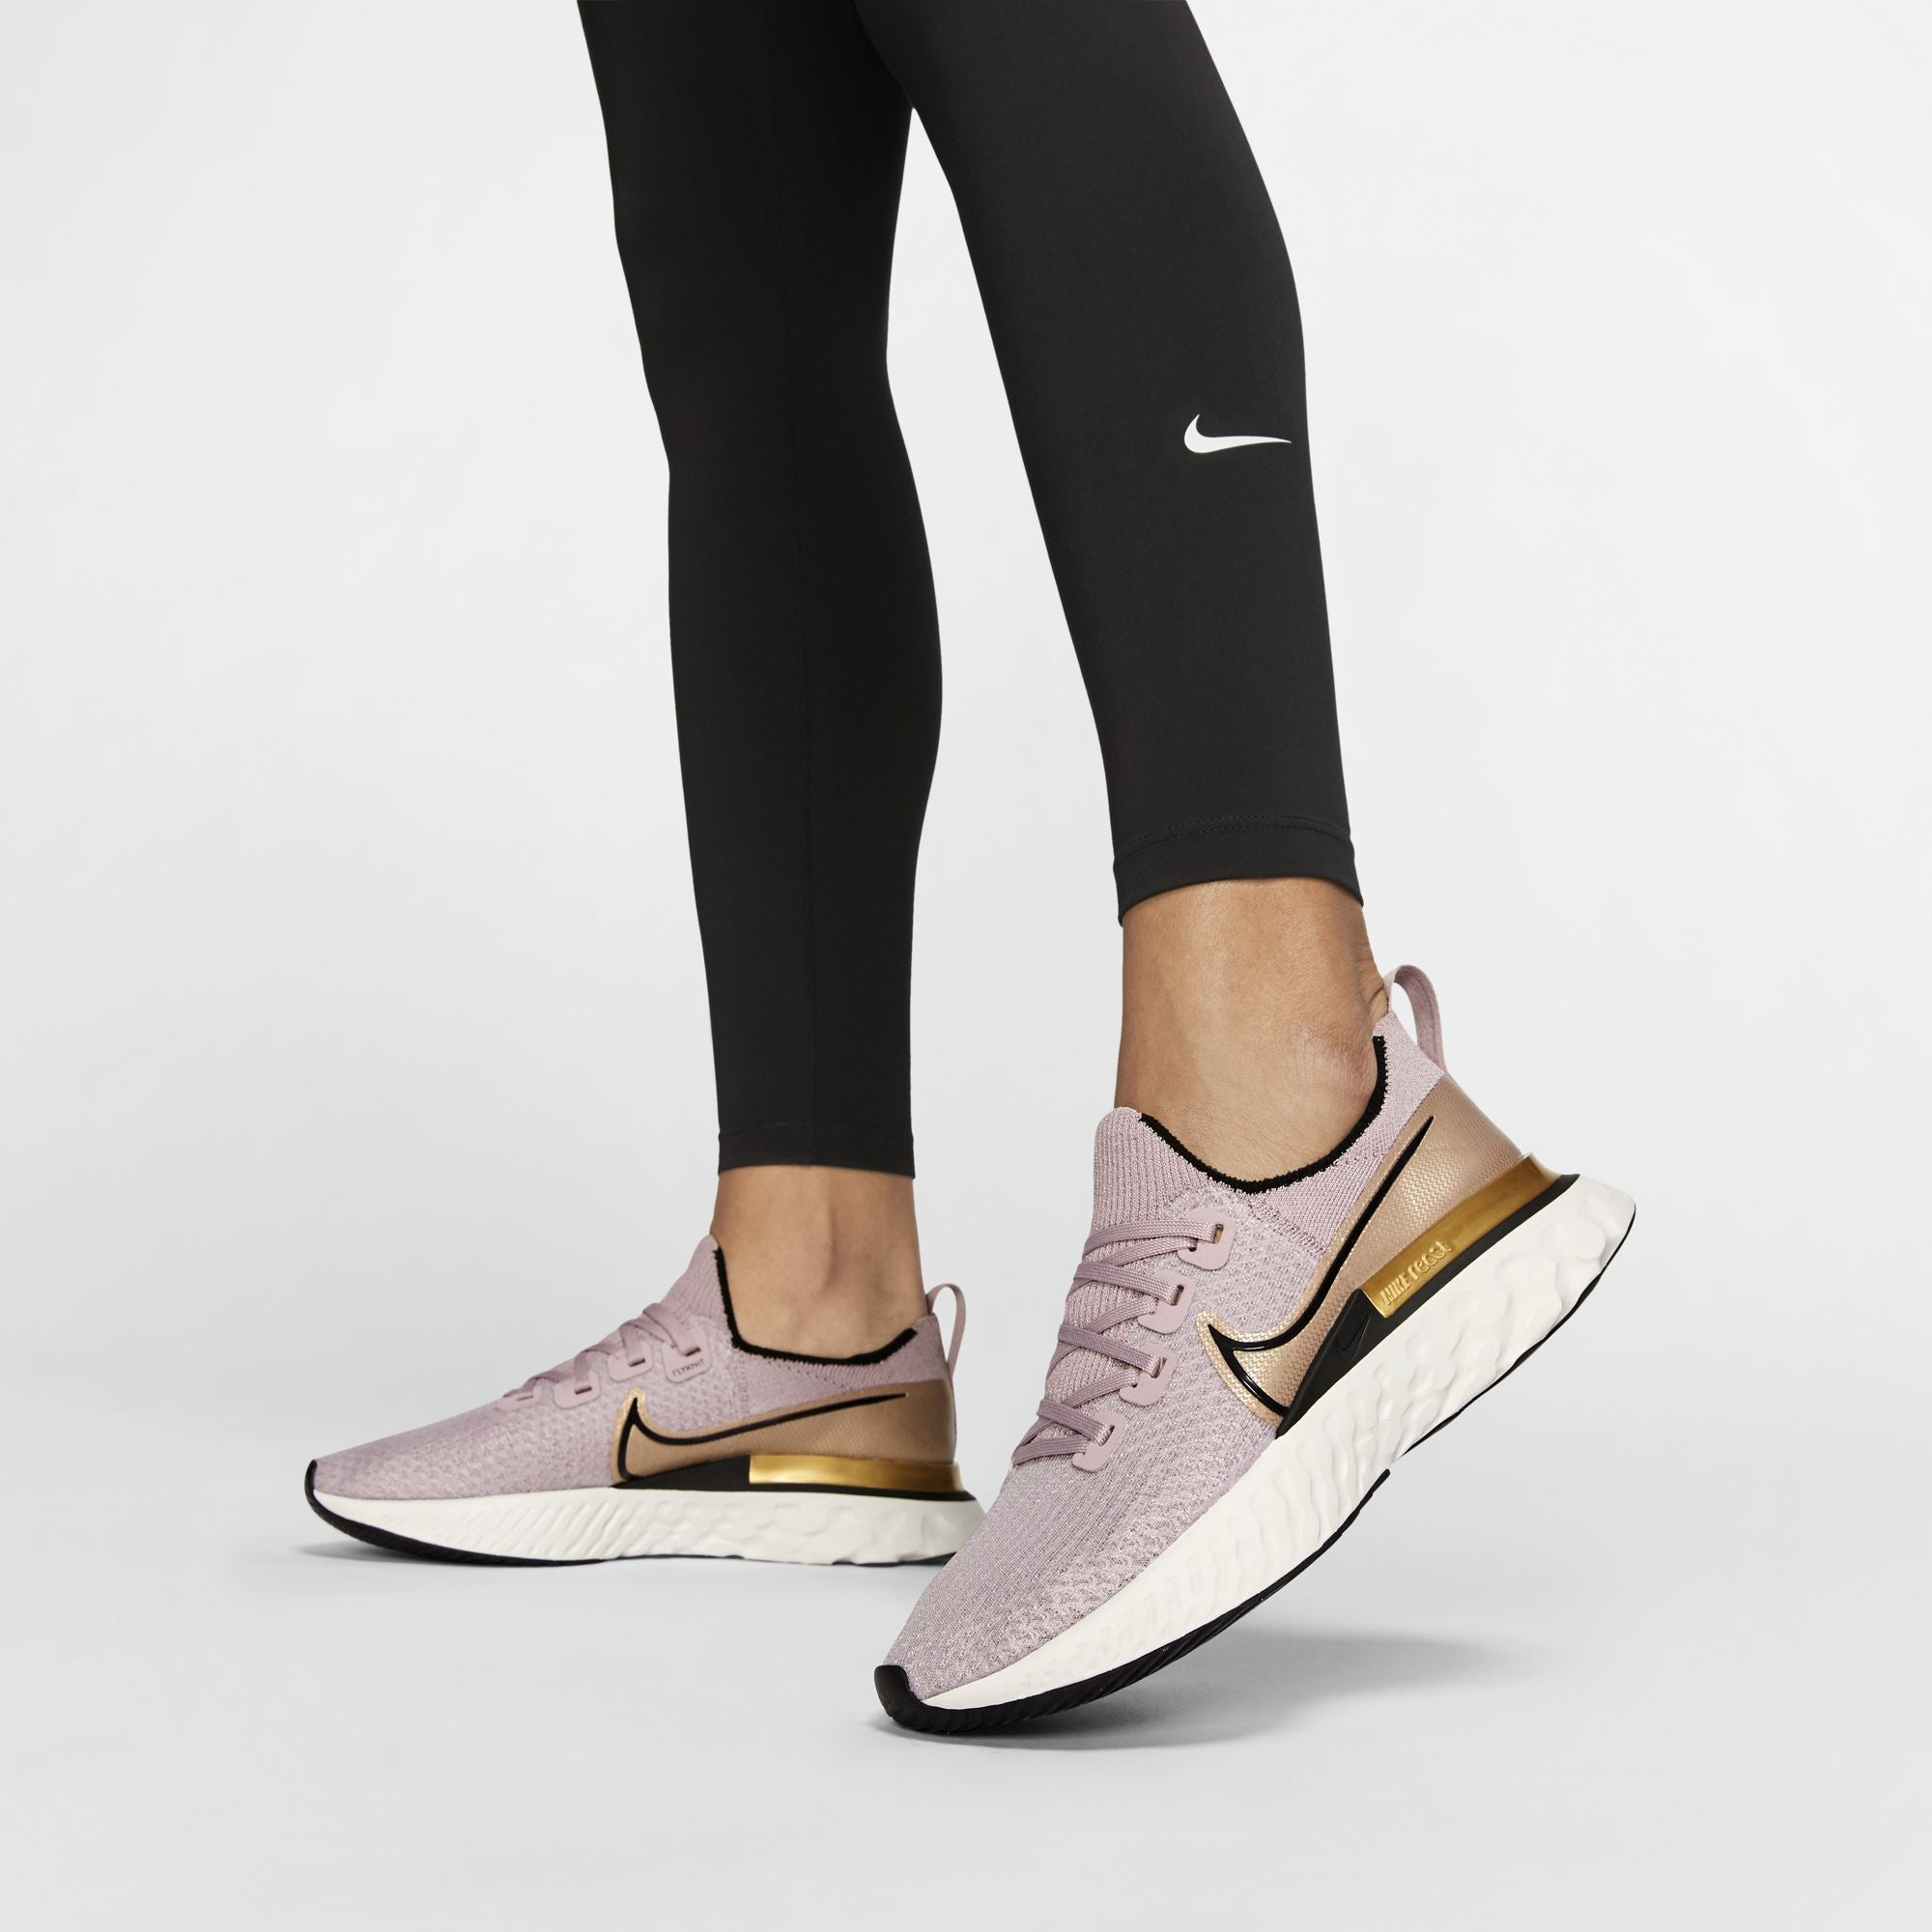 Nike Womens One Tights - Black/White SP-ApparelTights-Womens Nike